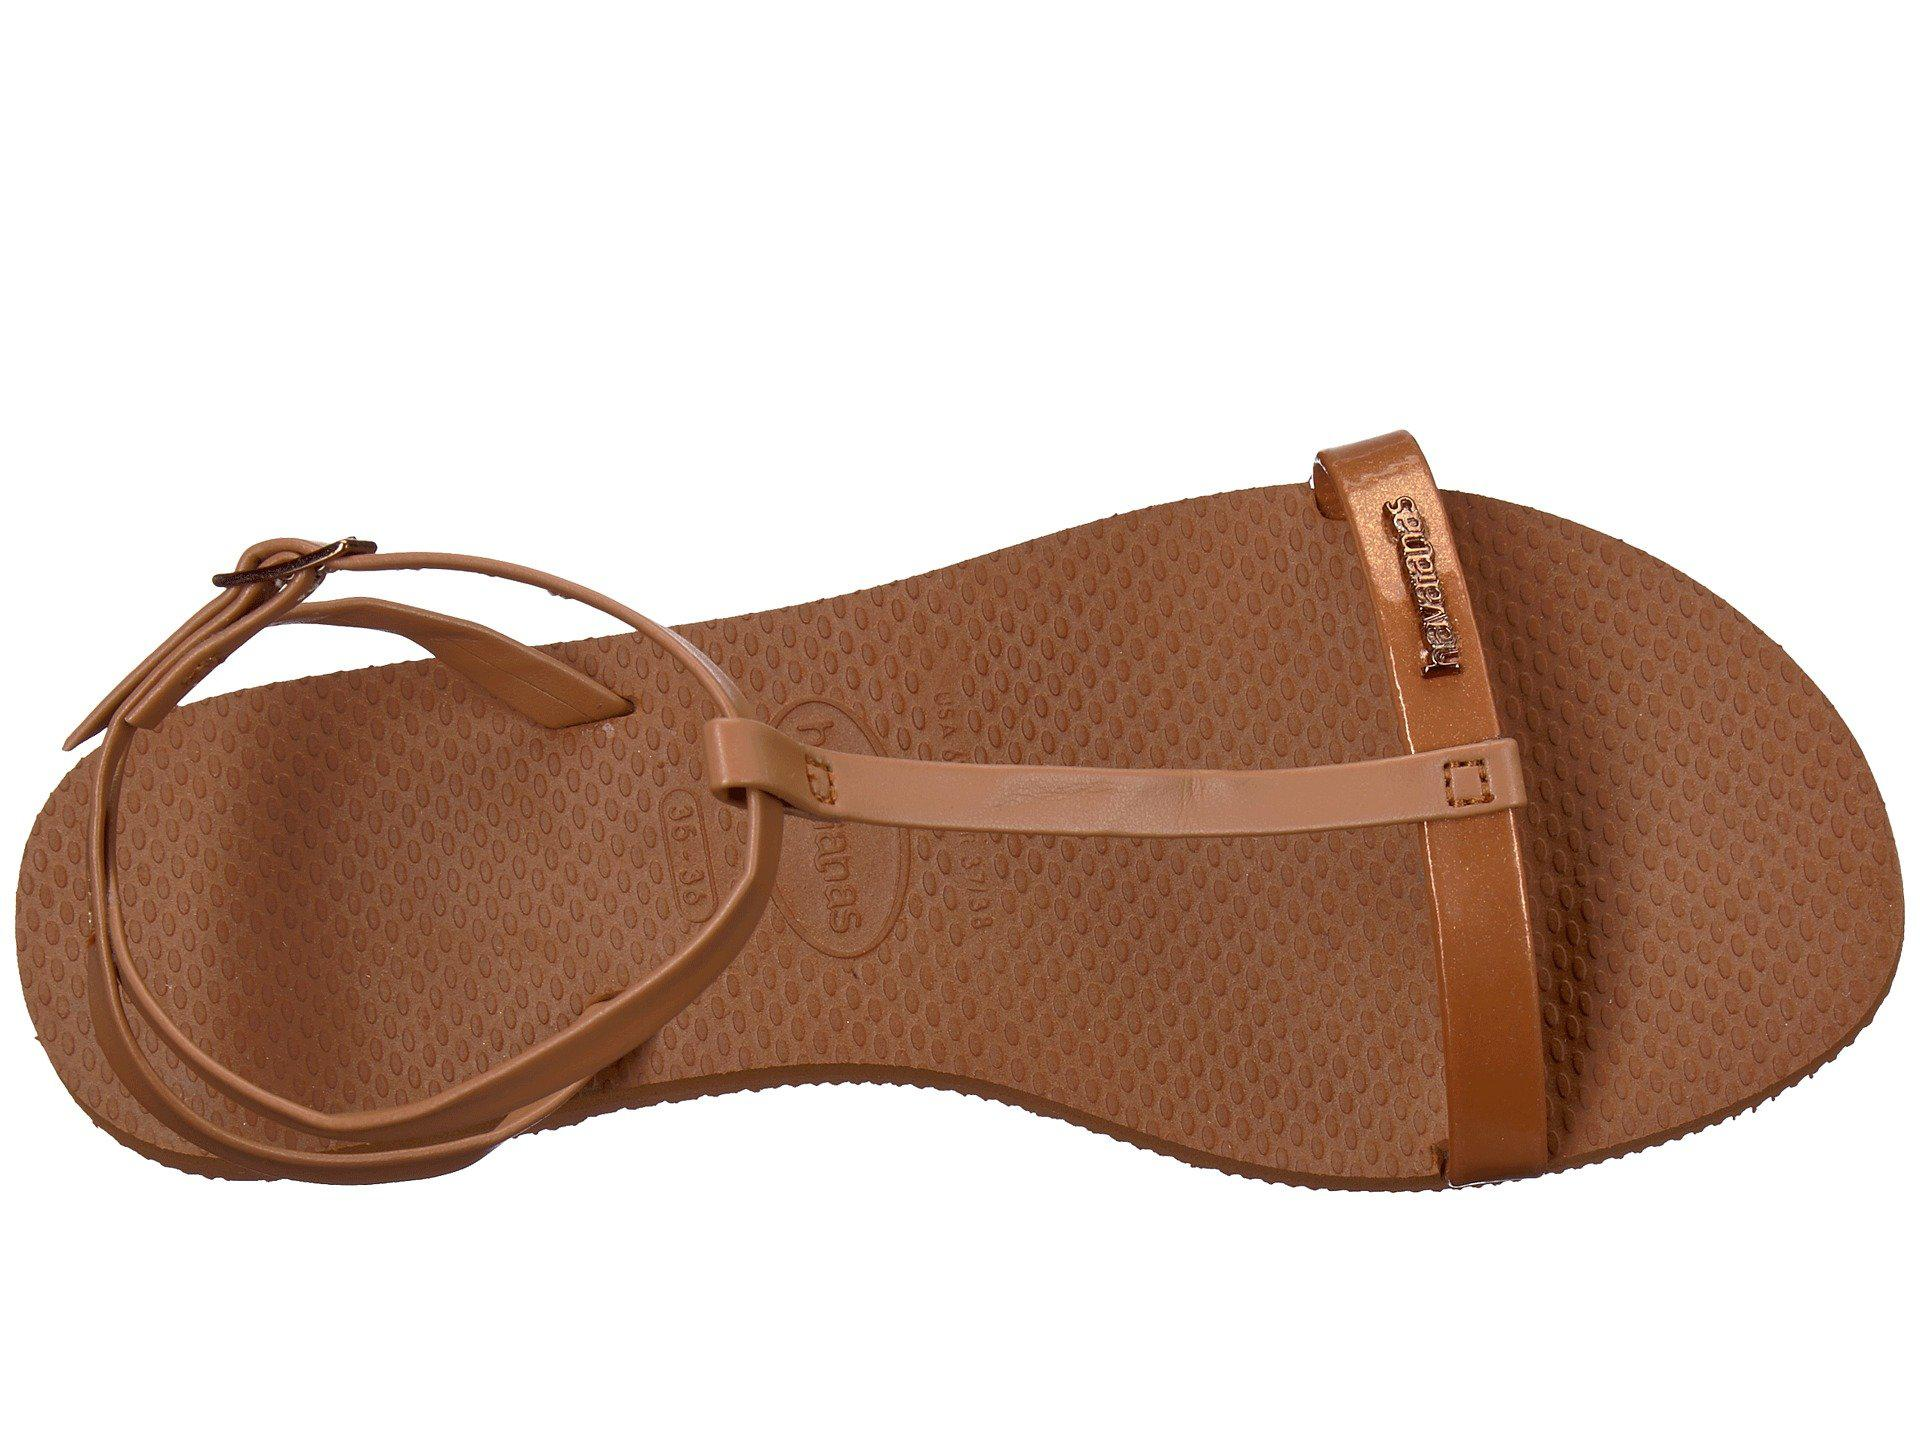 220d9a1e281390 Havaianas - Brown You Belize Flip Flops - Lyst. View fullscreen